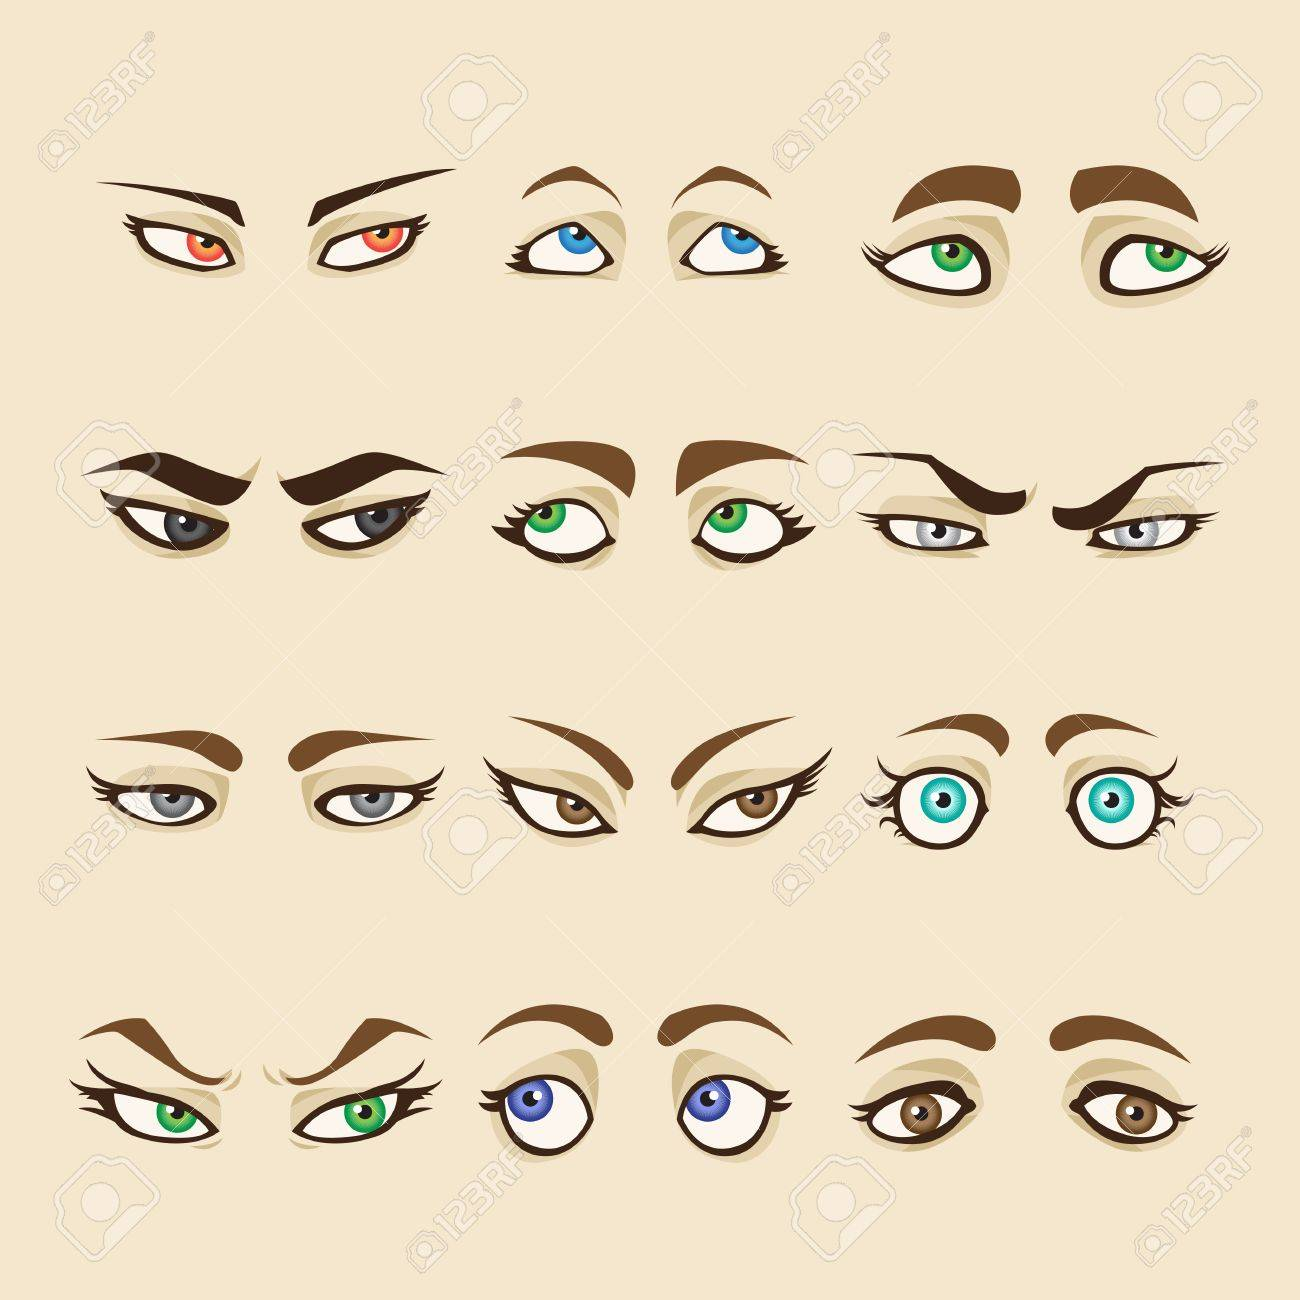 Set of cartoon girl eyes isolated on skin color background collection of woman eyes